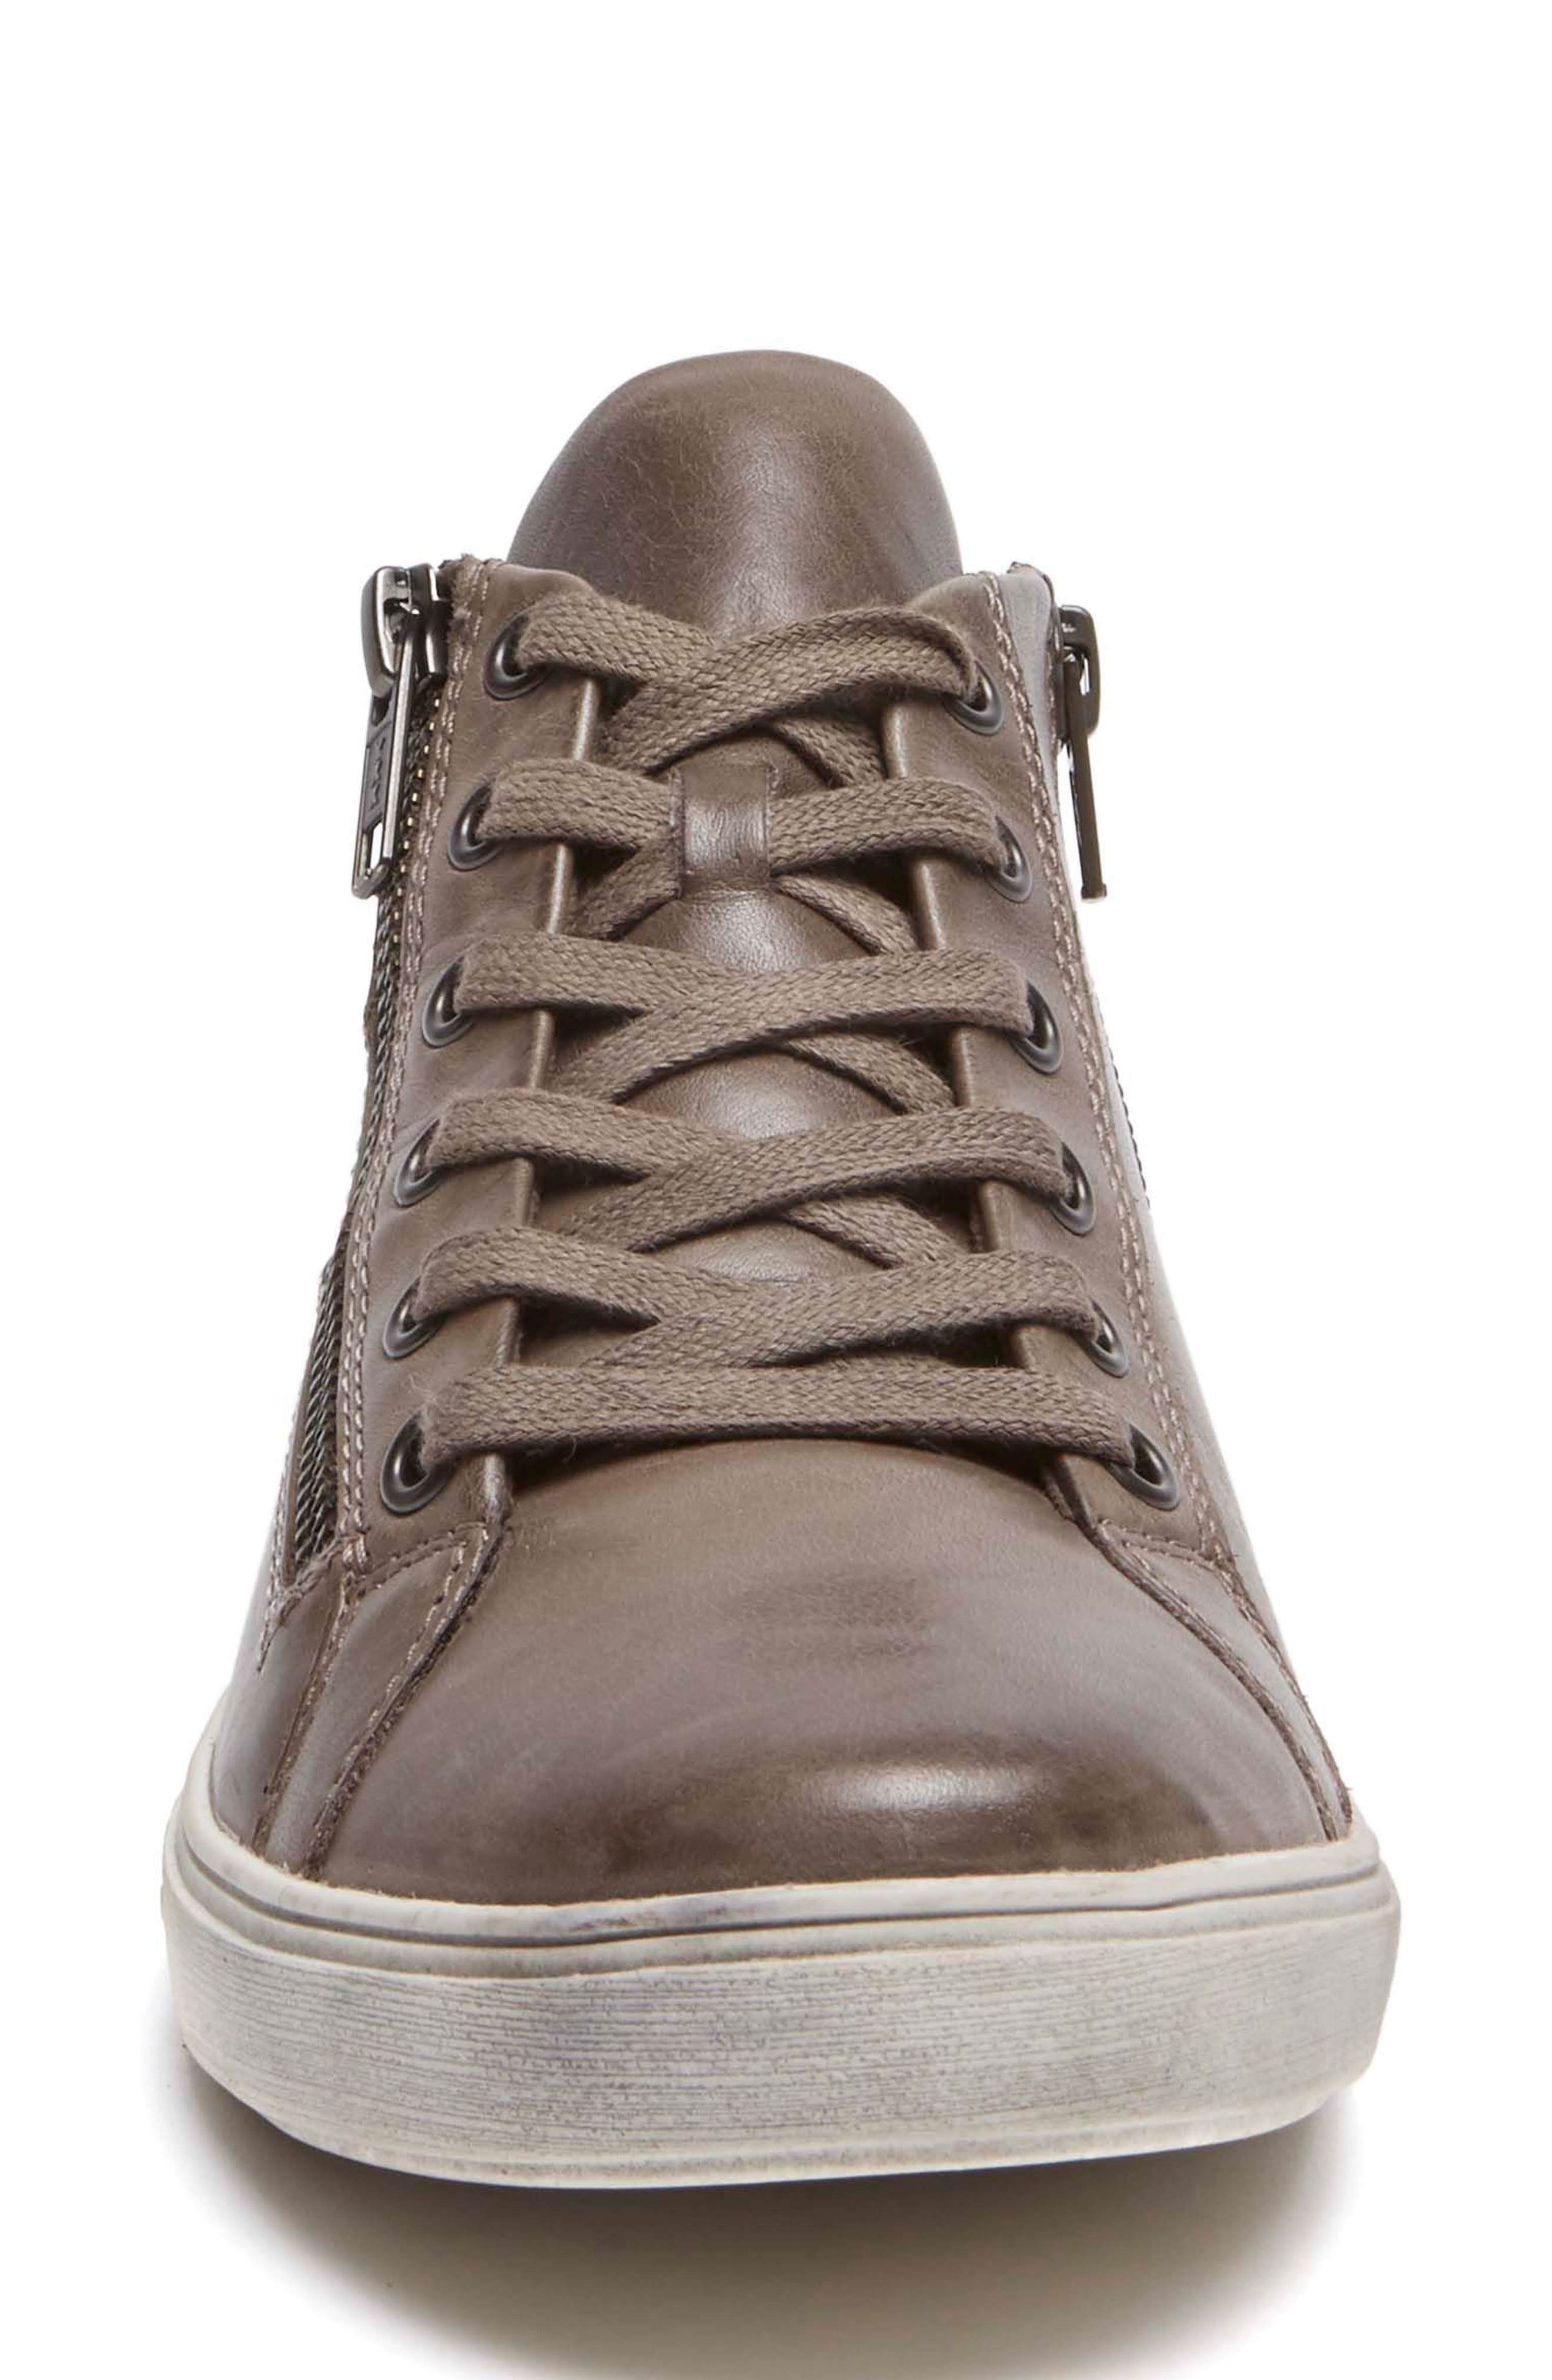 Willa High Top Sneaker,                             Alternate thumbnail 4, color,                             Grey Leather